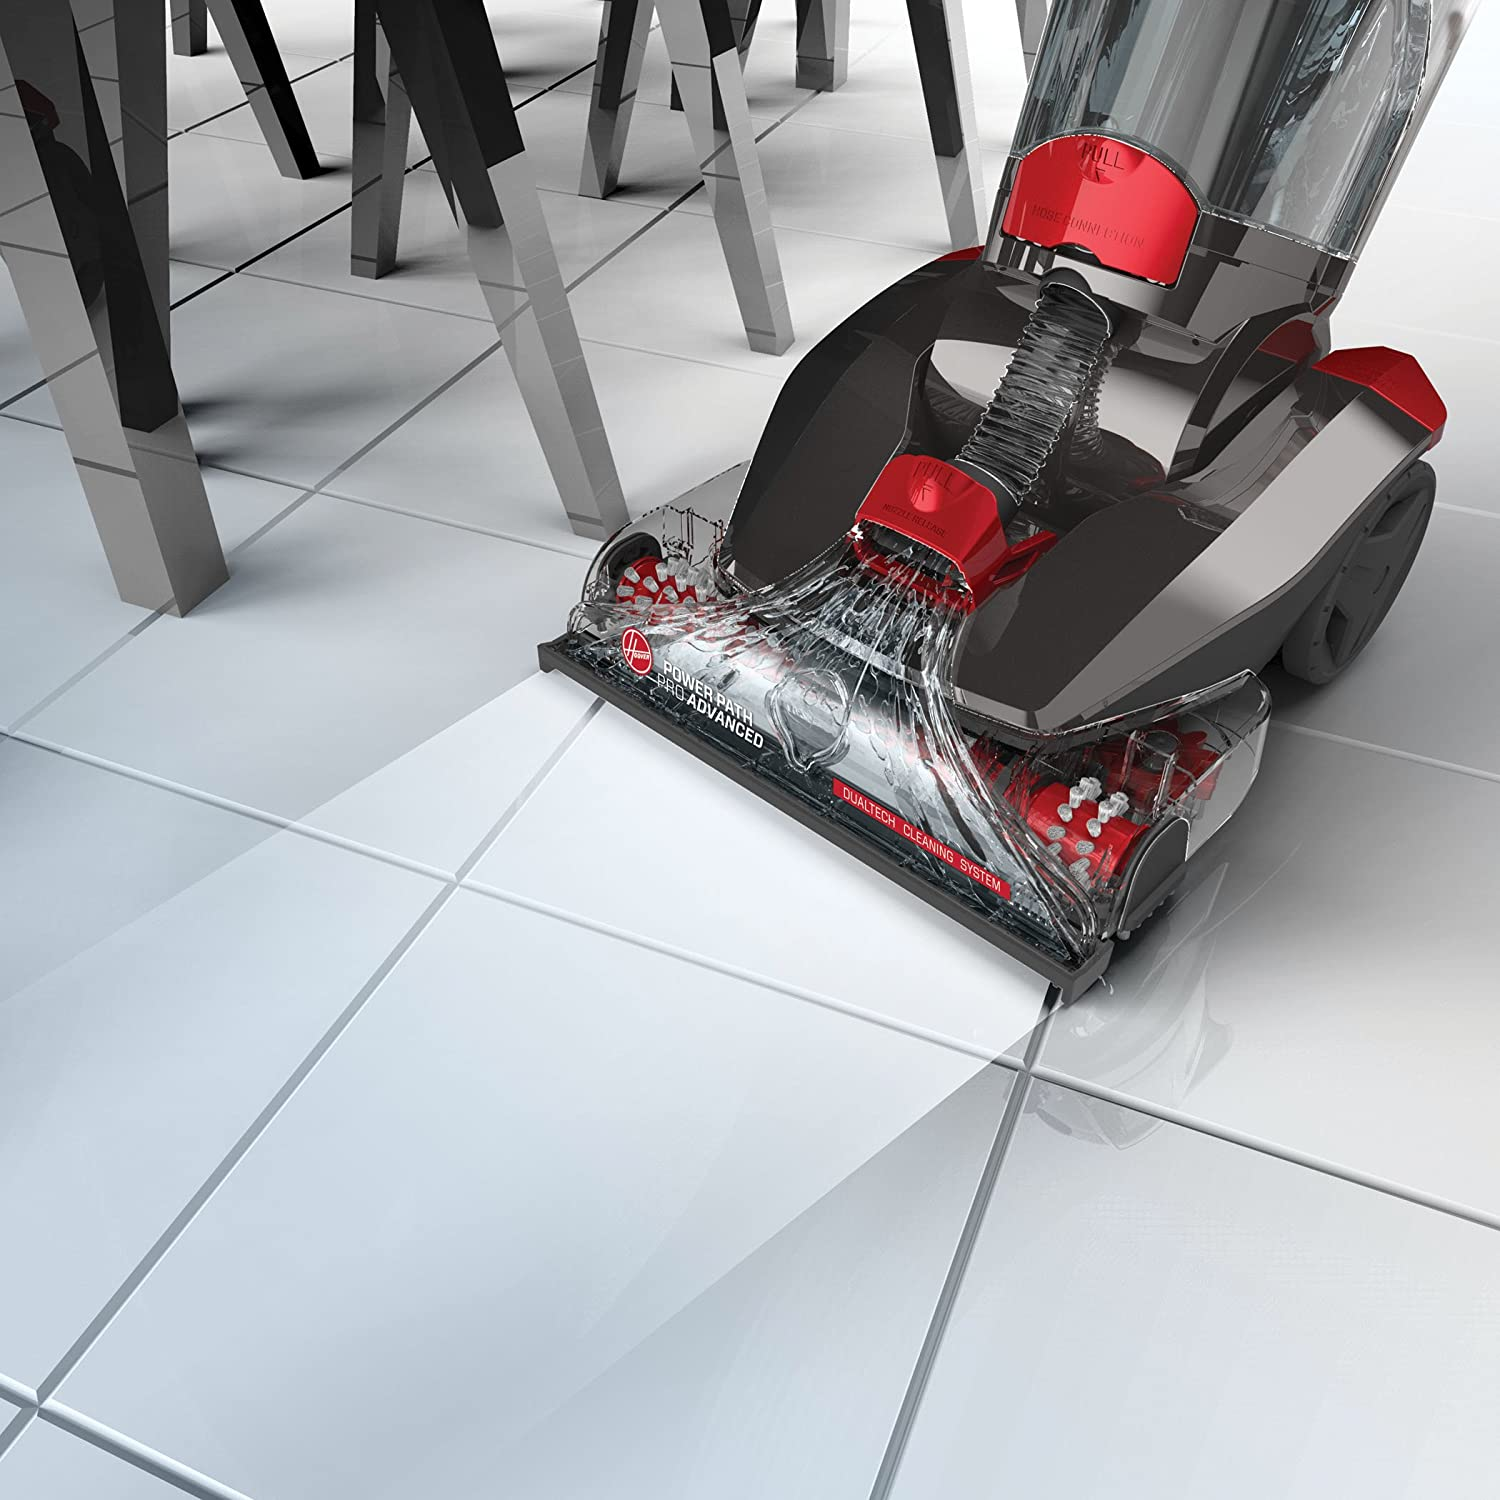 Hoover Power Path Pro Advanced Carpet Cleaner FH51102PC